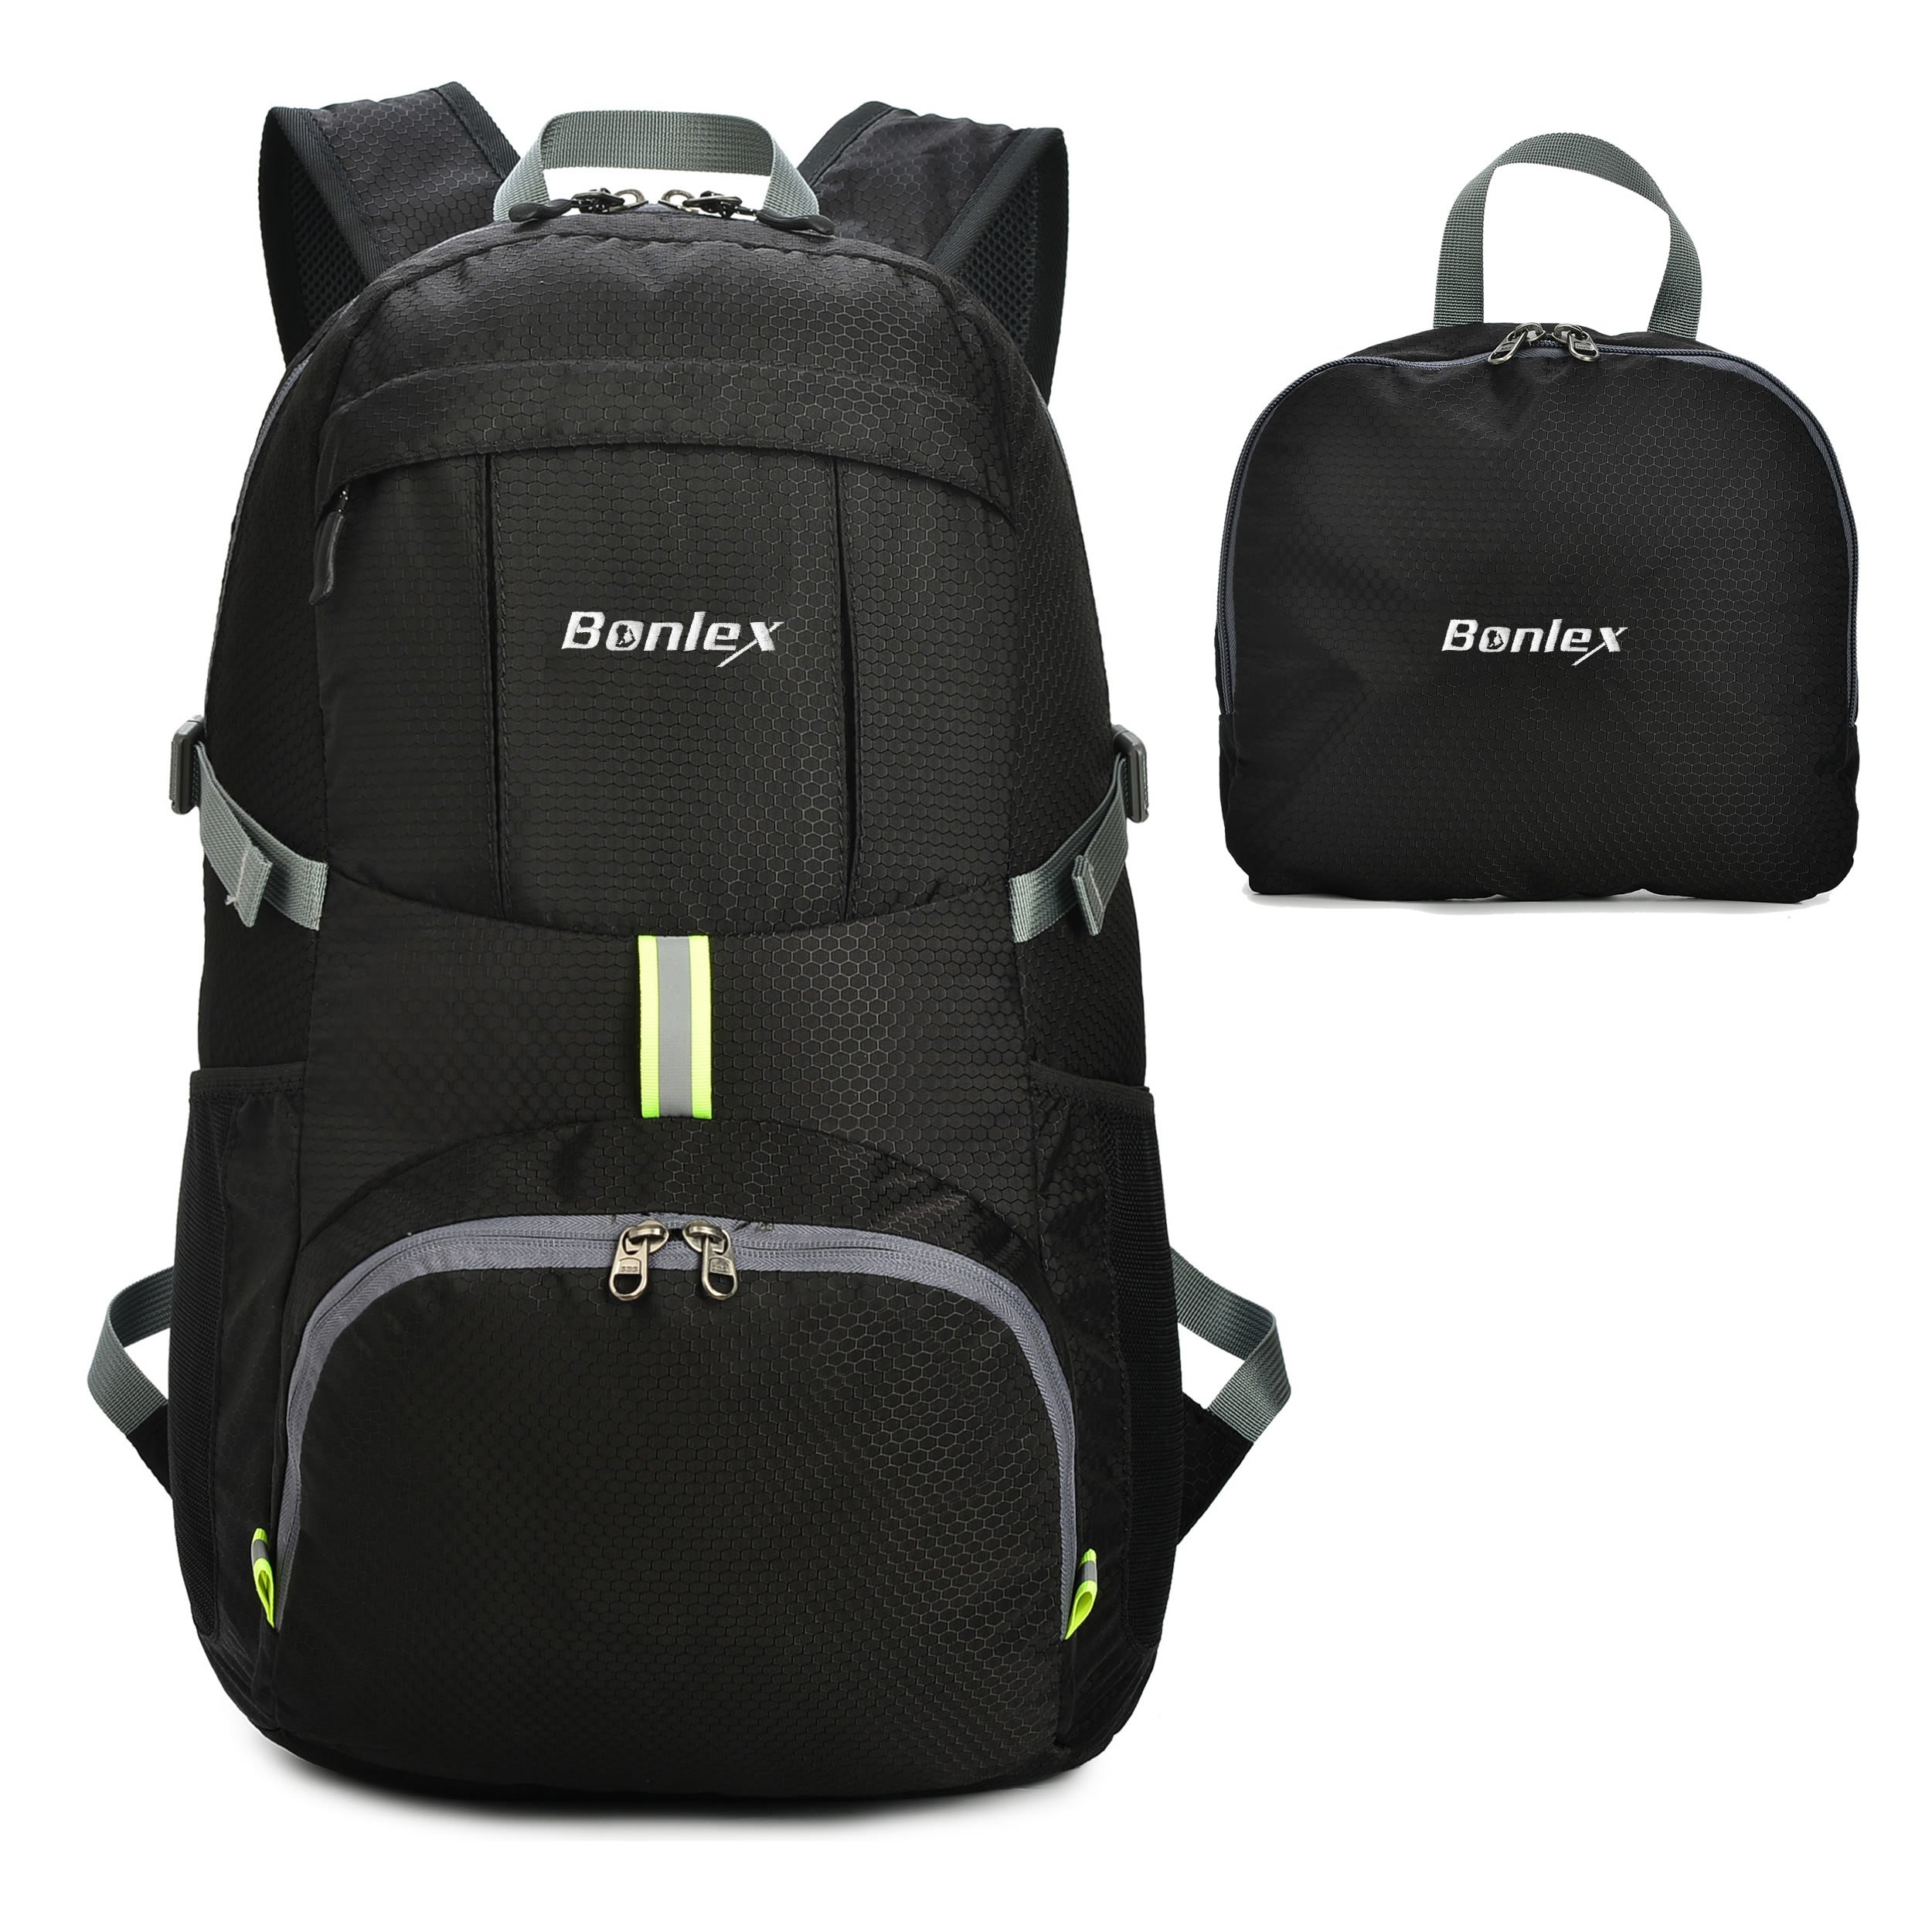 Foldable Backpack Packable Travel Backpack - 35L Durable Ultra Lightweight Water Resistant Packable Daypack Handy for Hiking,Camping,Traveling,backpacking Outdoor Sports (Black)